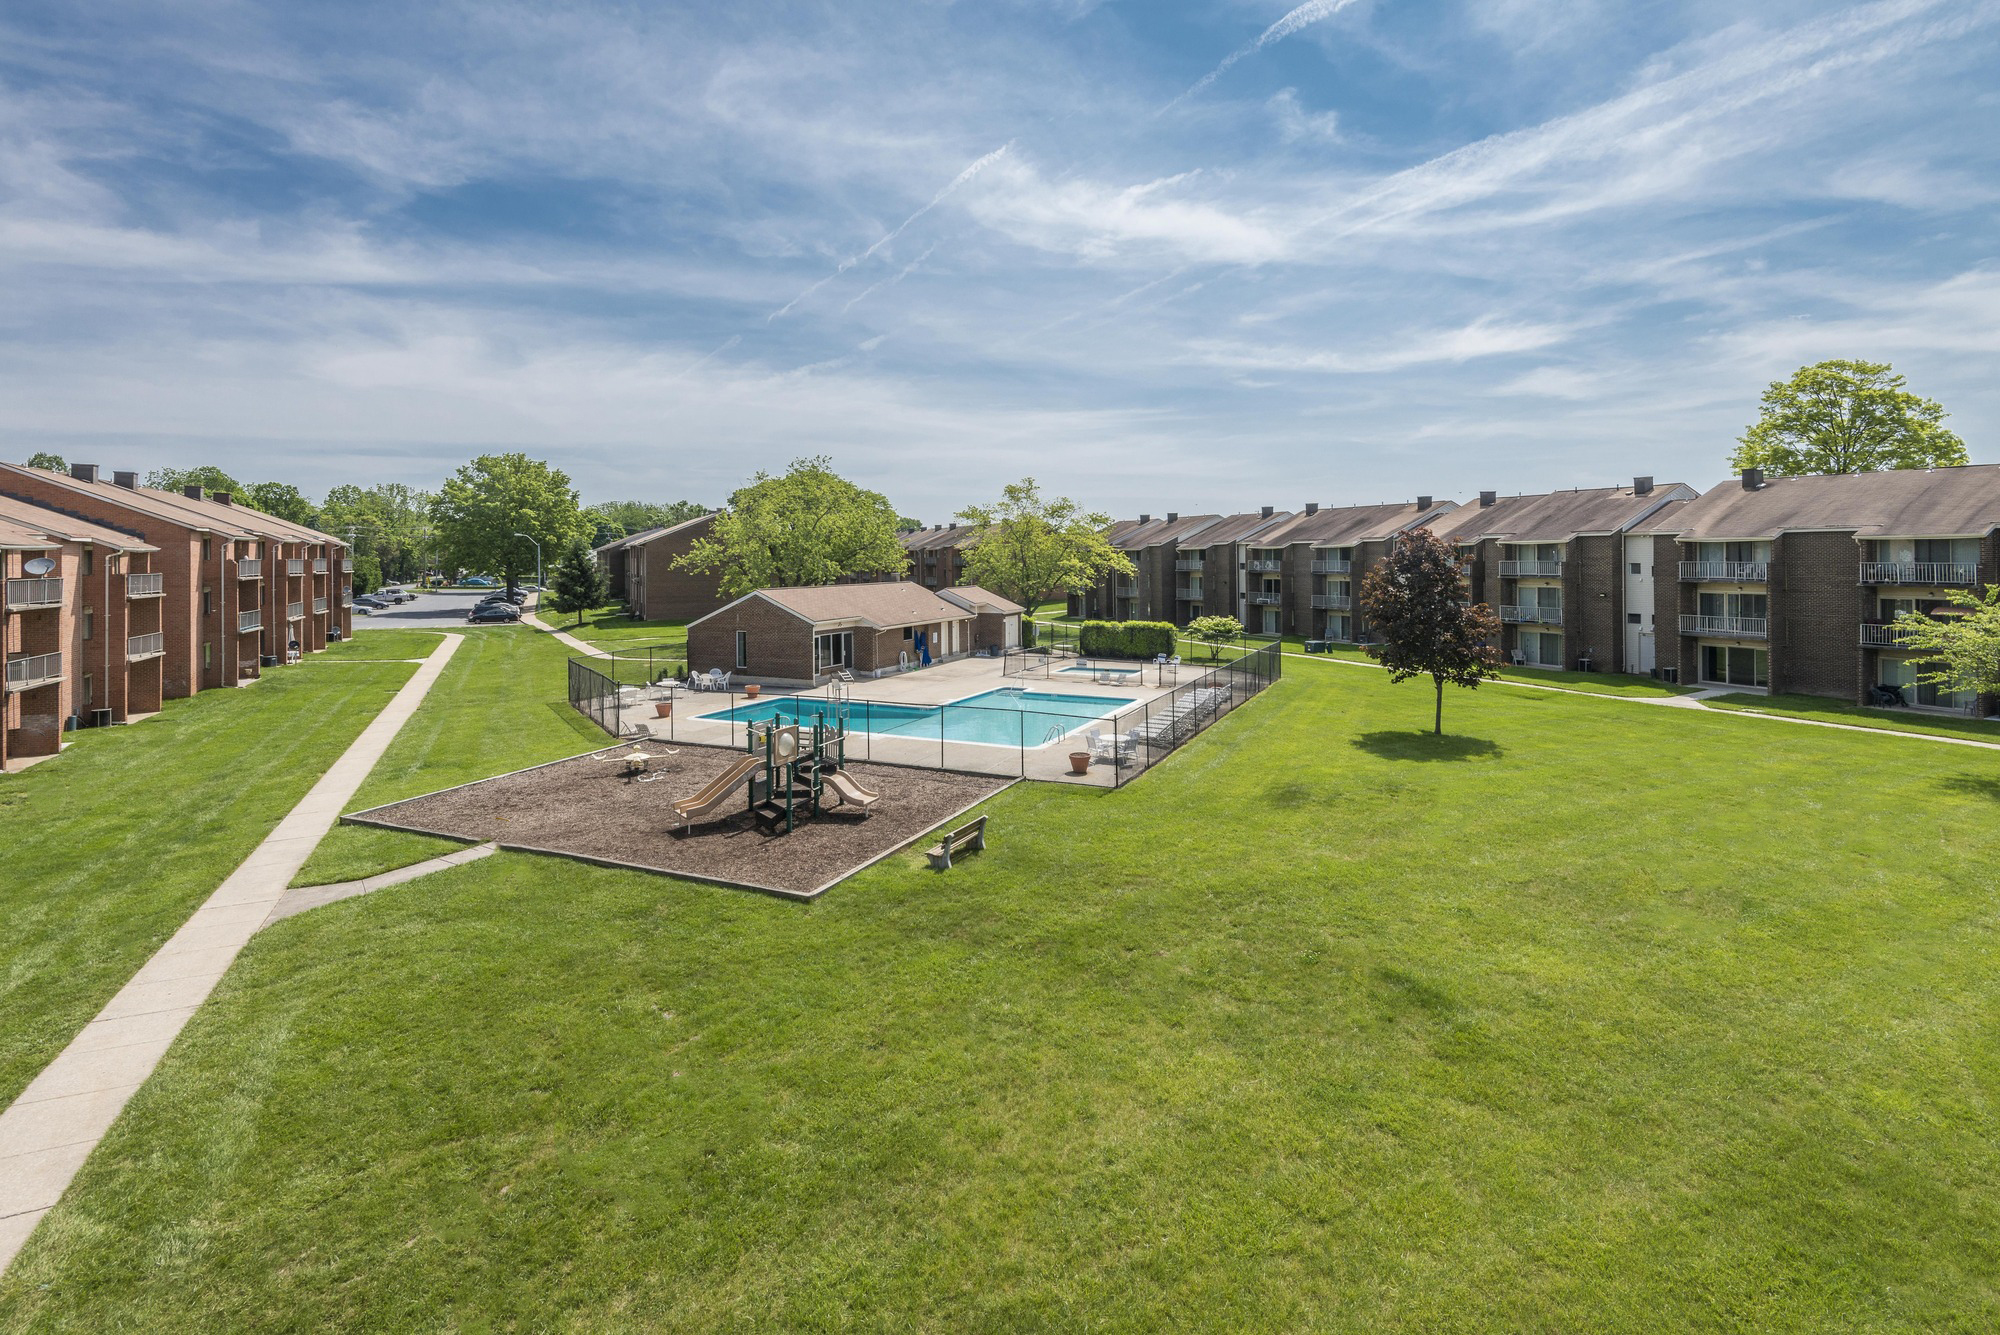 Rolling Park Apartments in Windsor Mill, MD - Apartment Community